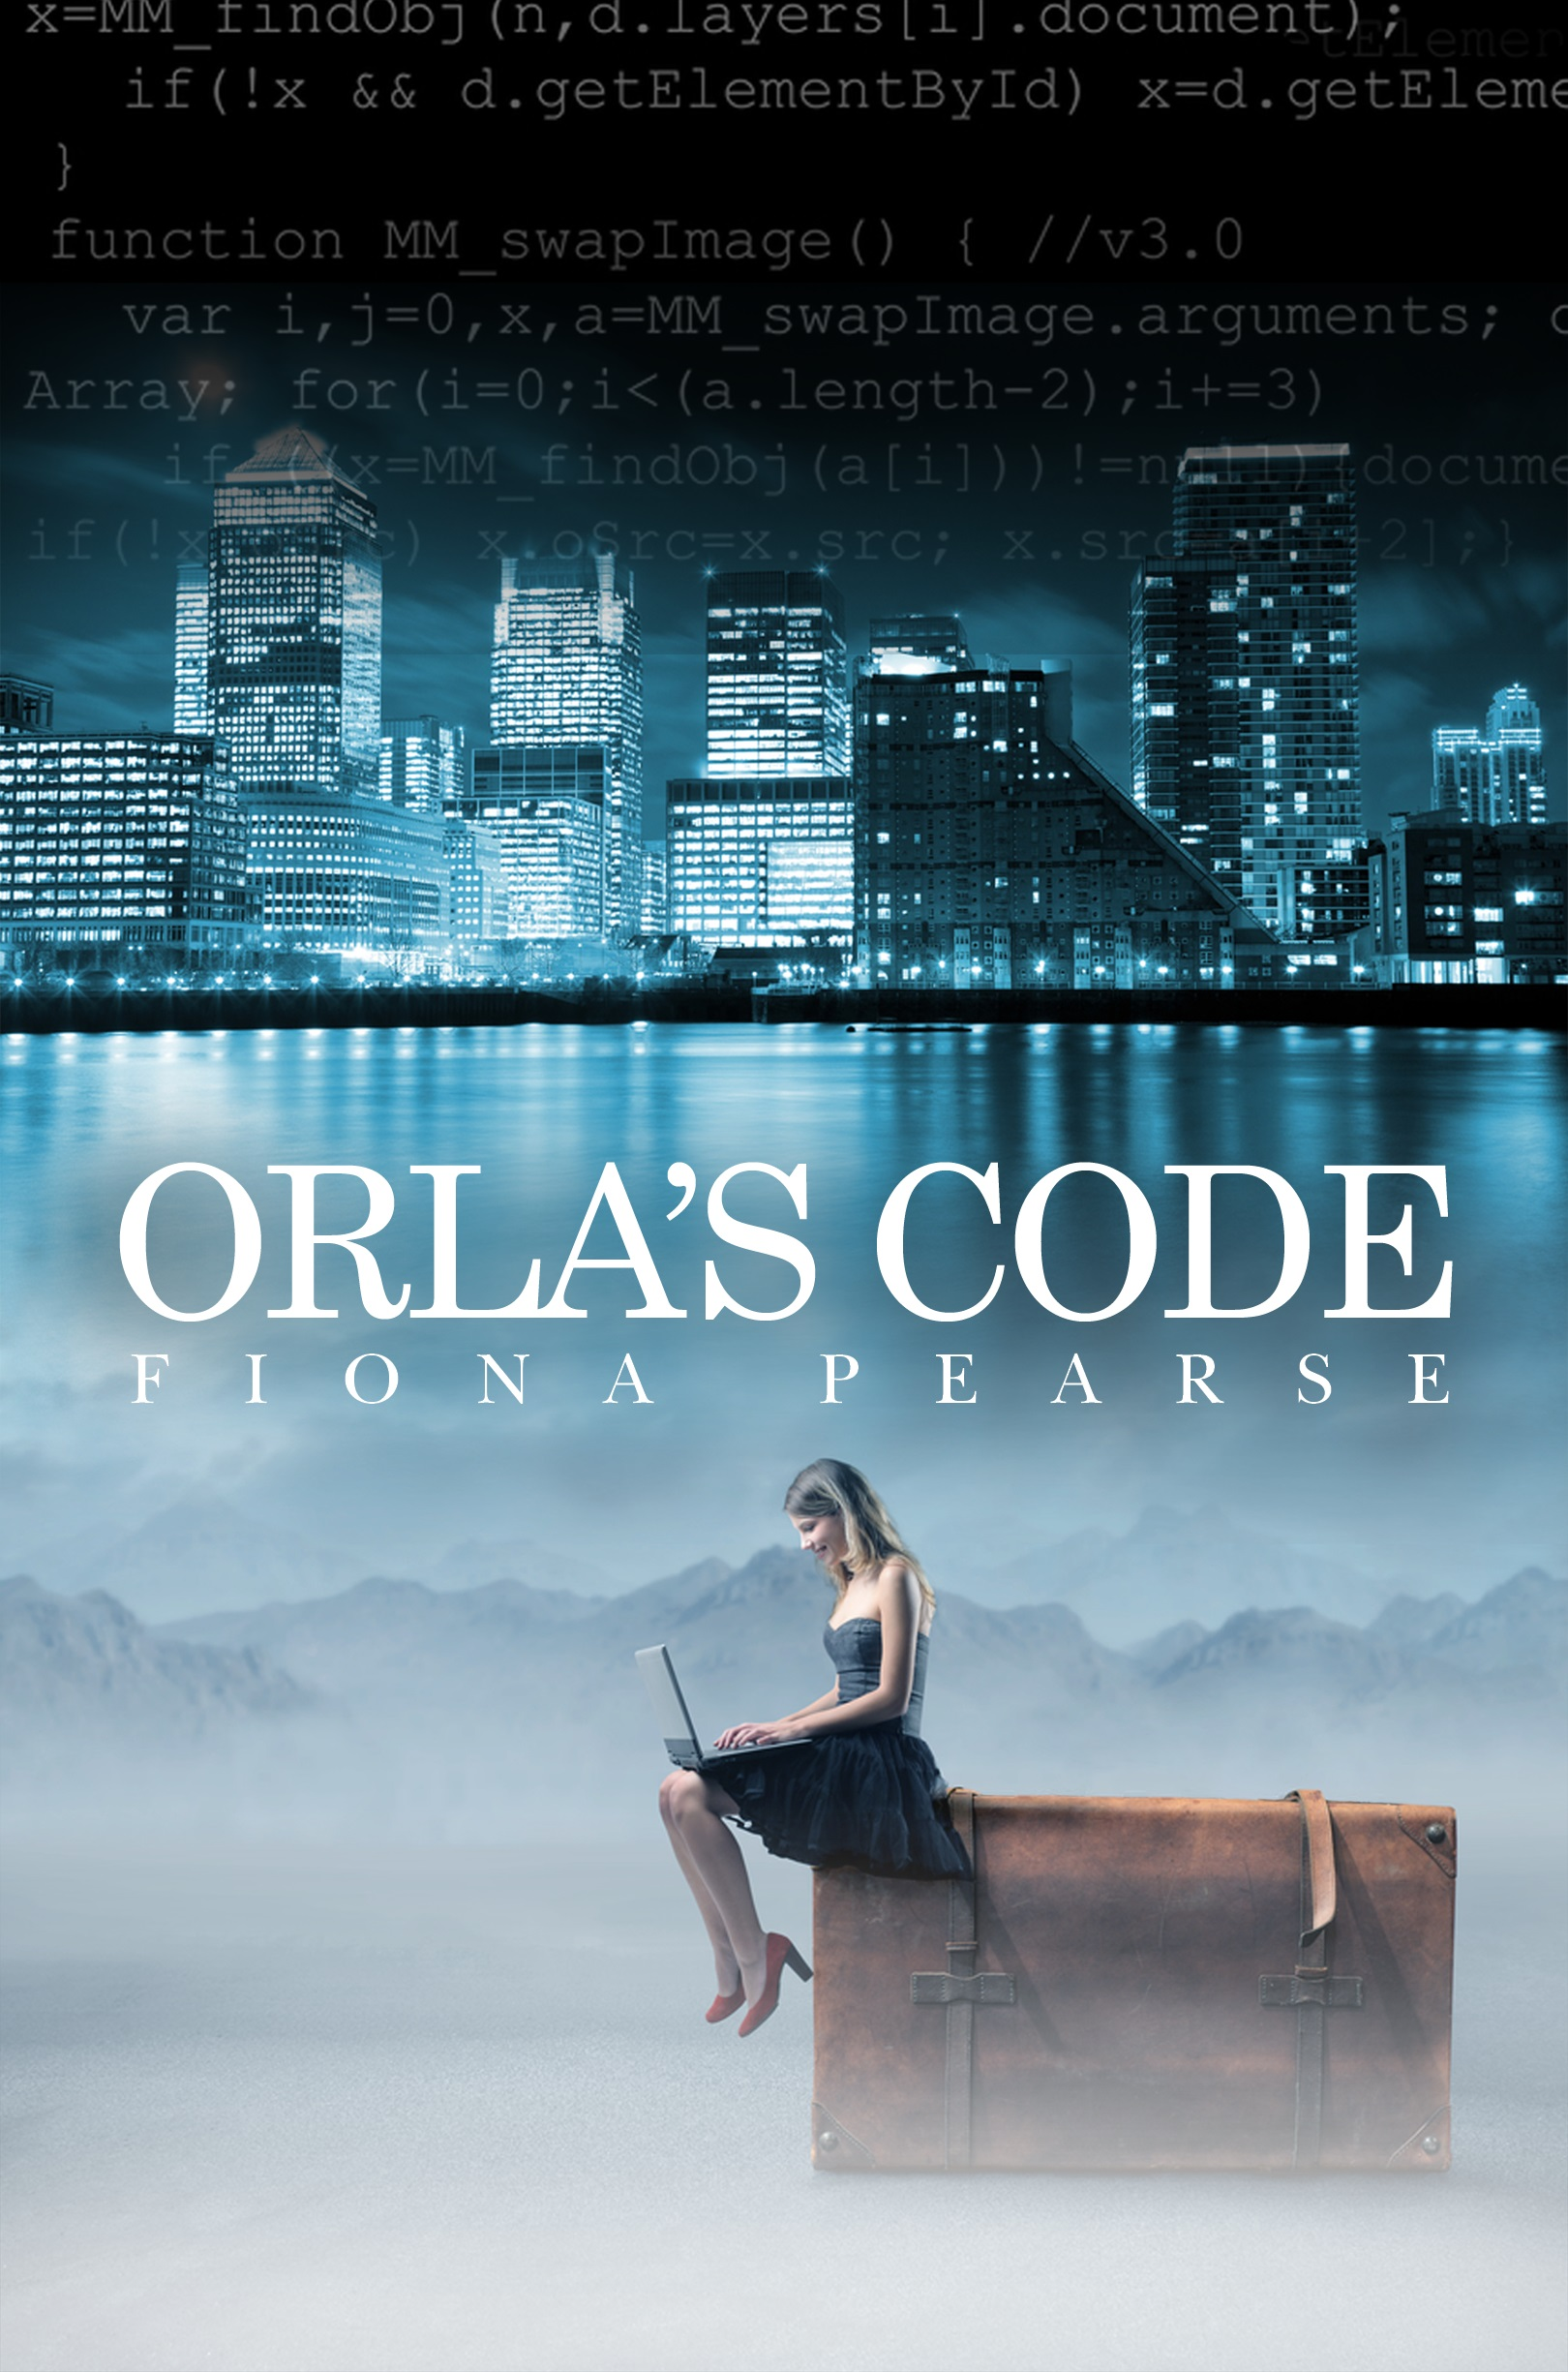 OrlasCode_Cover